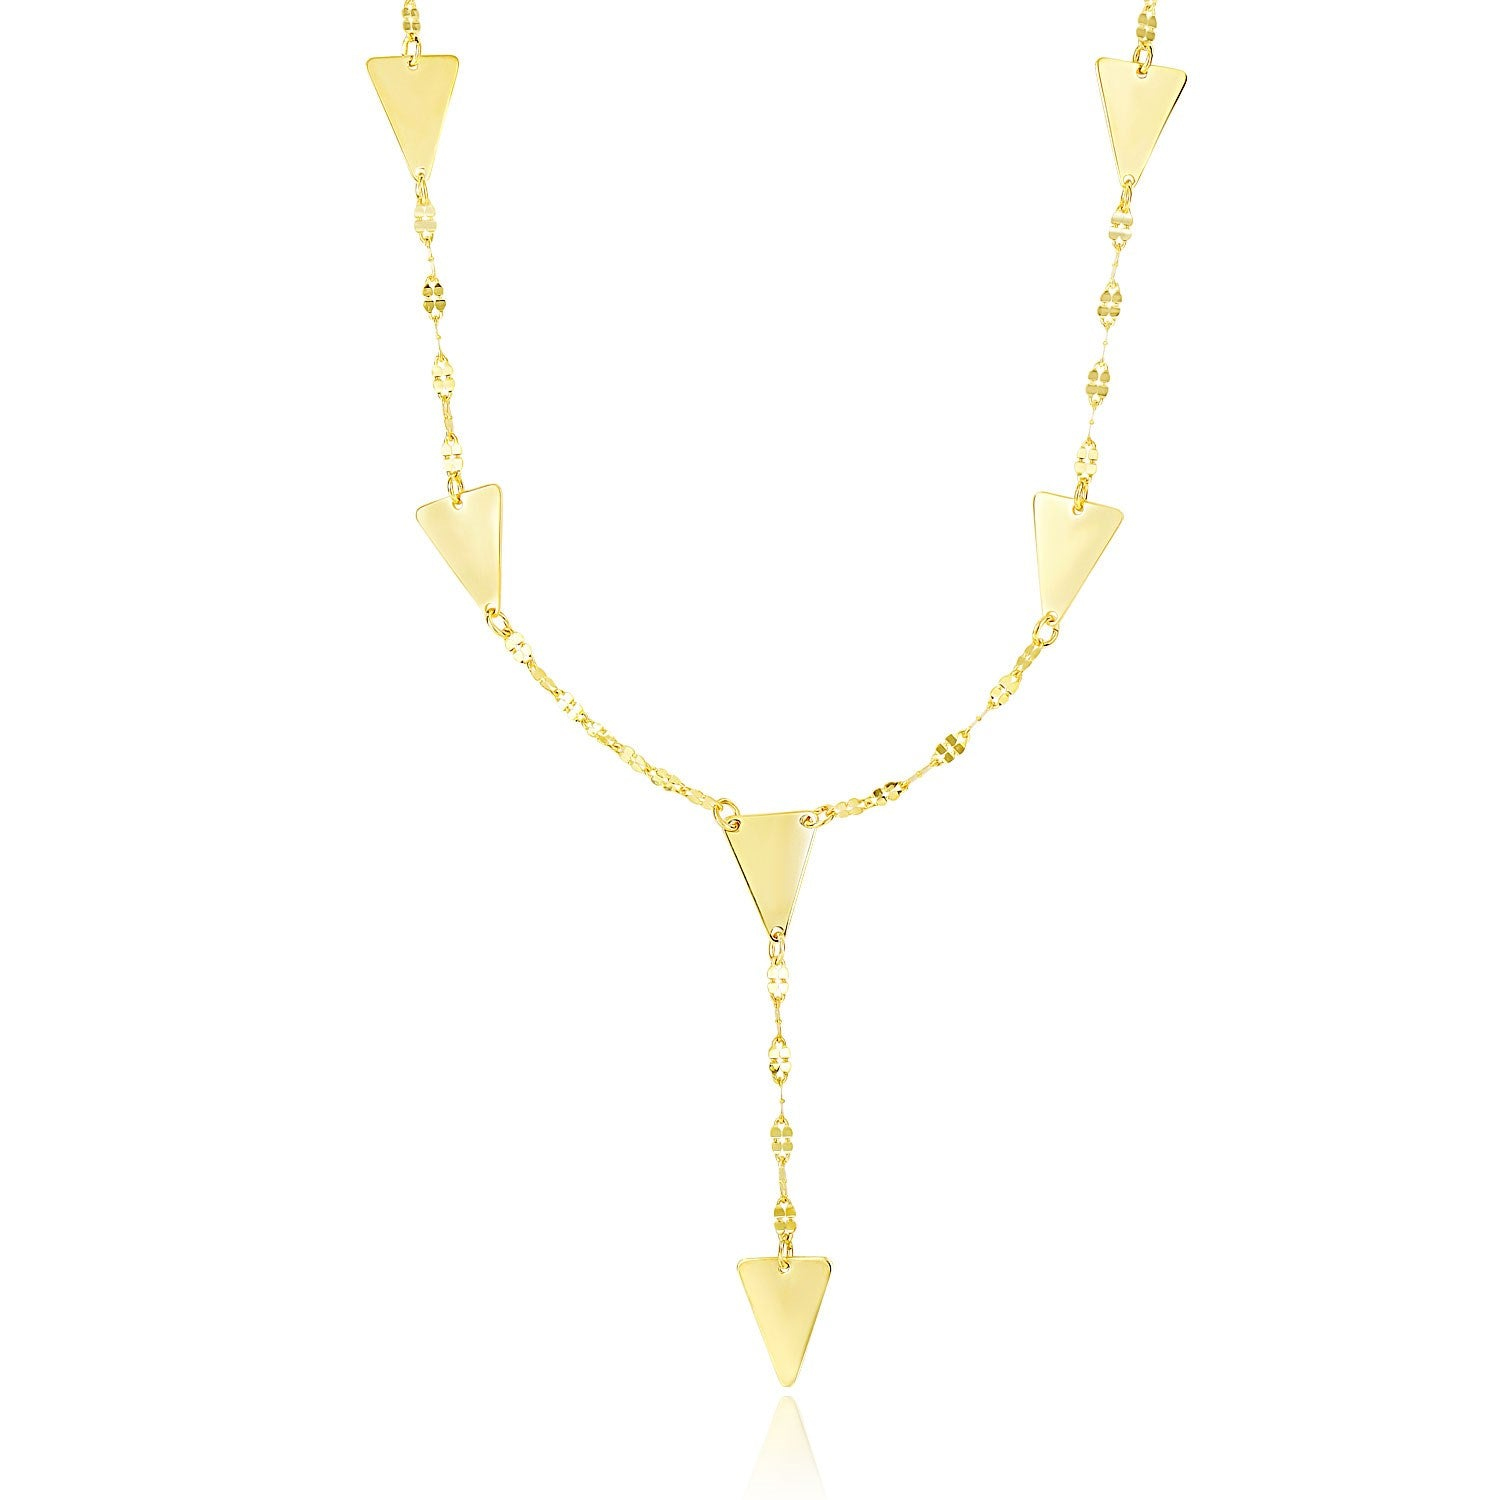 14K Yellow Gold Fancy Lariat Chain Necklace with Triangle Shape Stations